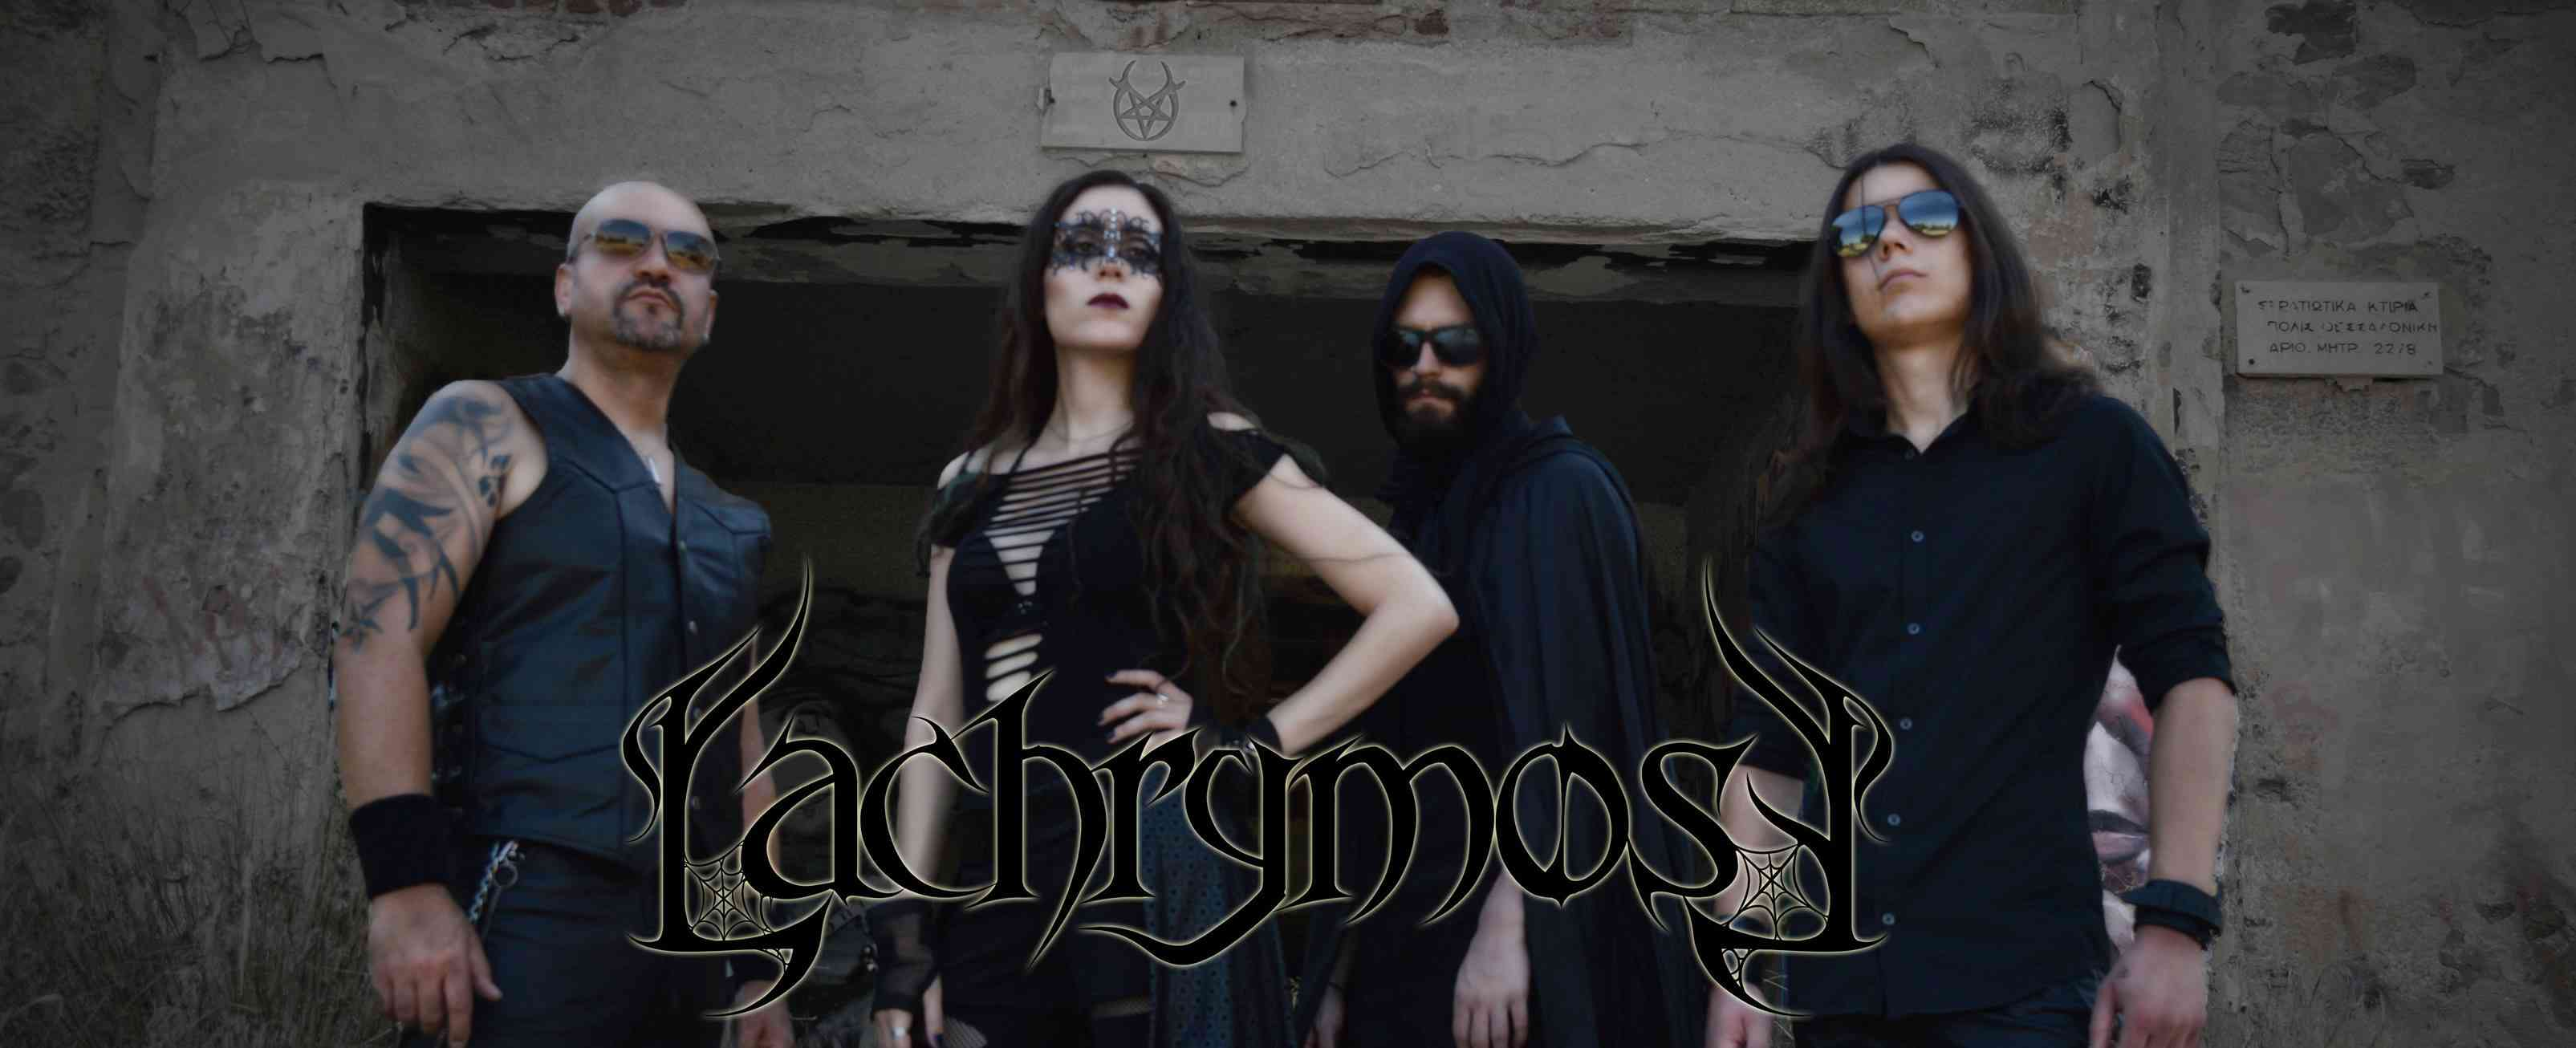 LACHRYMOSE The Unseen (2018) EP Gothic/Doom Metal Grèce 14991210